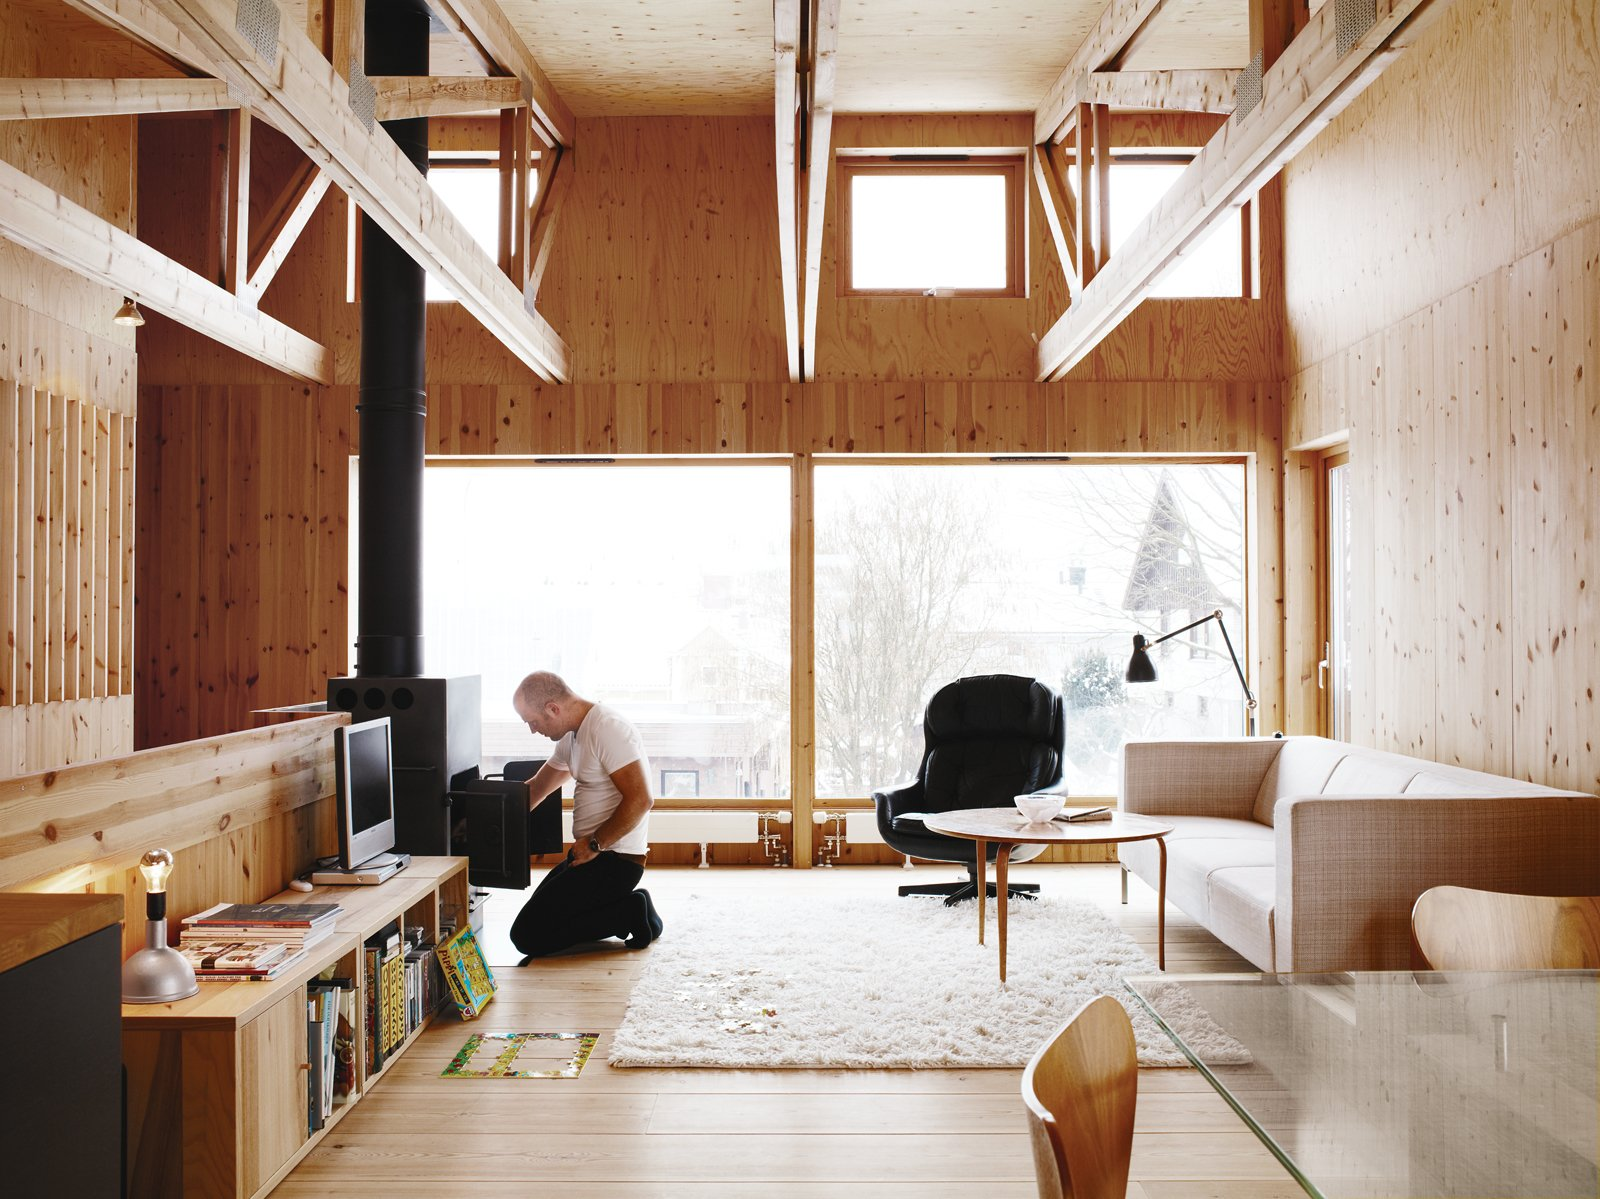 Articles about warm winter these wood clad interiors on Dwell.com